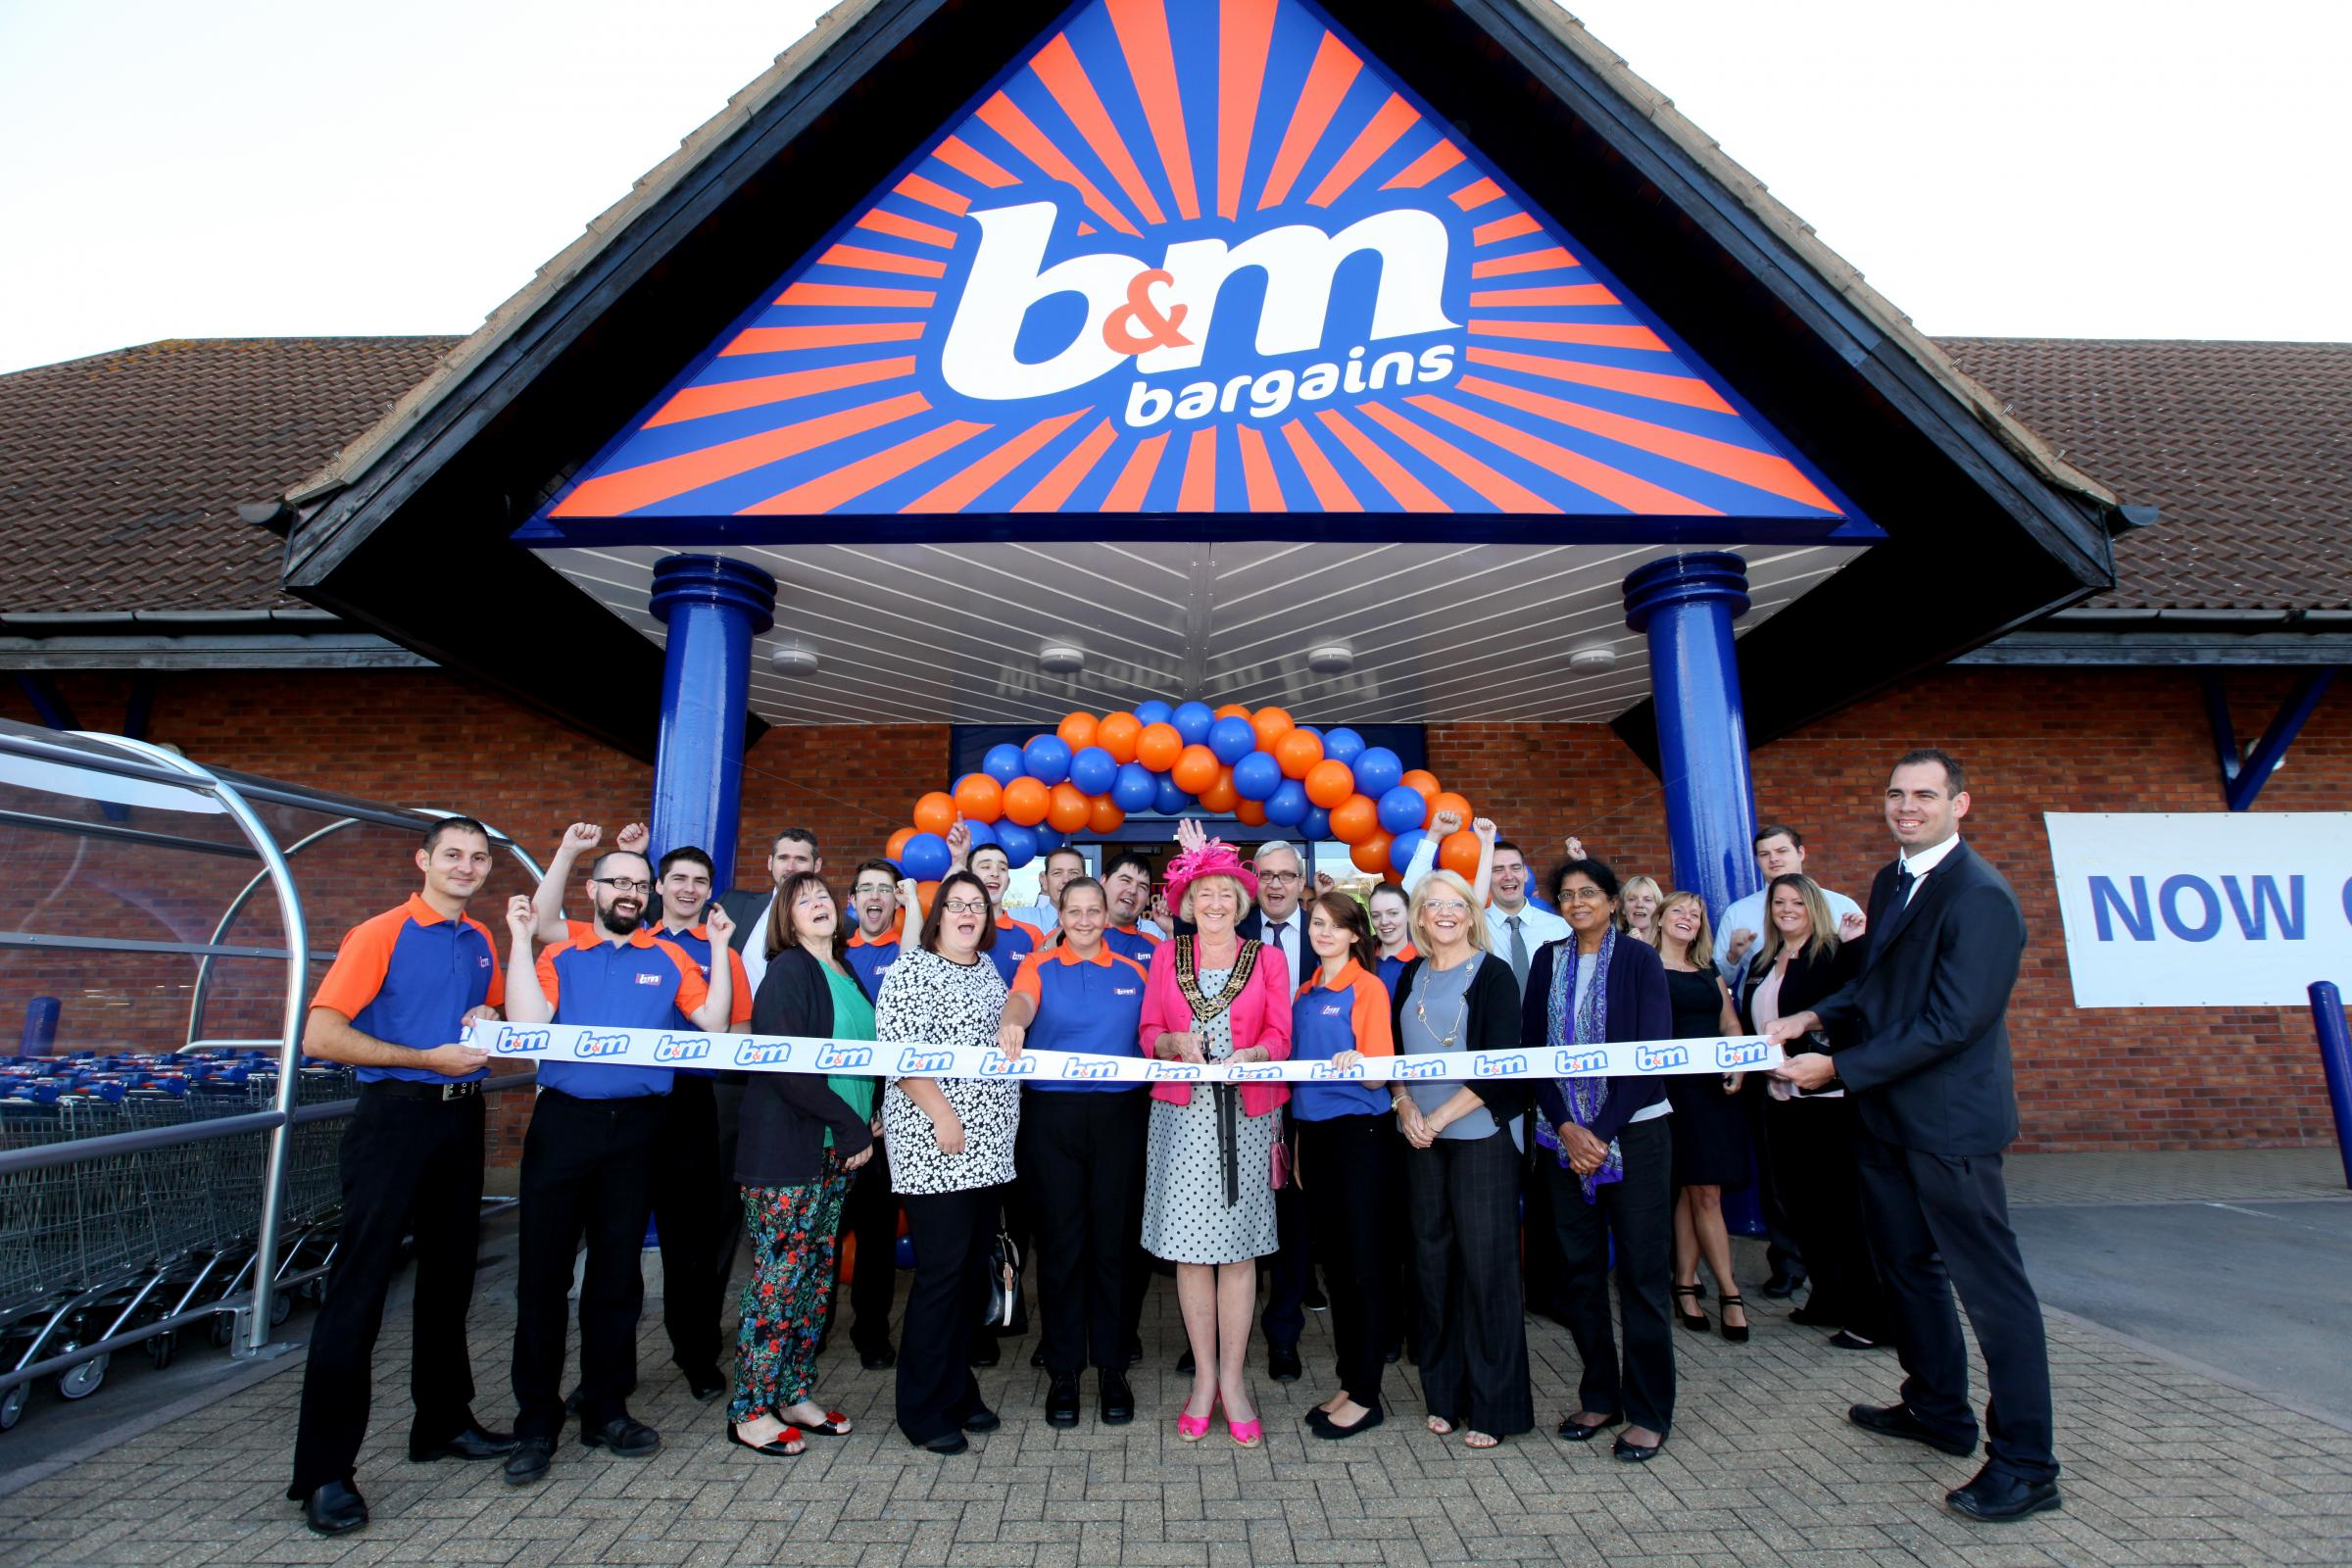 Opening of new B&M Bargains store in Millbrook - Mayor of Southampton Cllr Linda Norris cuts a ribbon to open the store alongside members of The Rainbow Project charity.